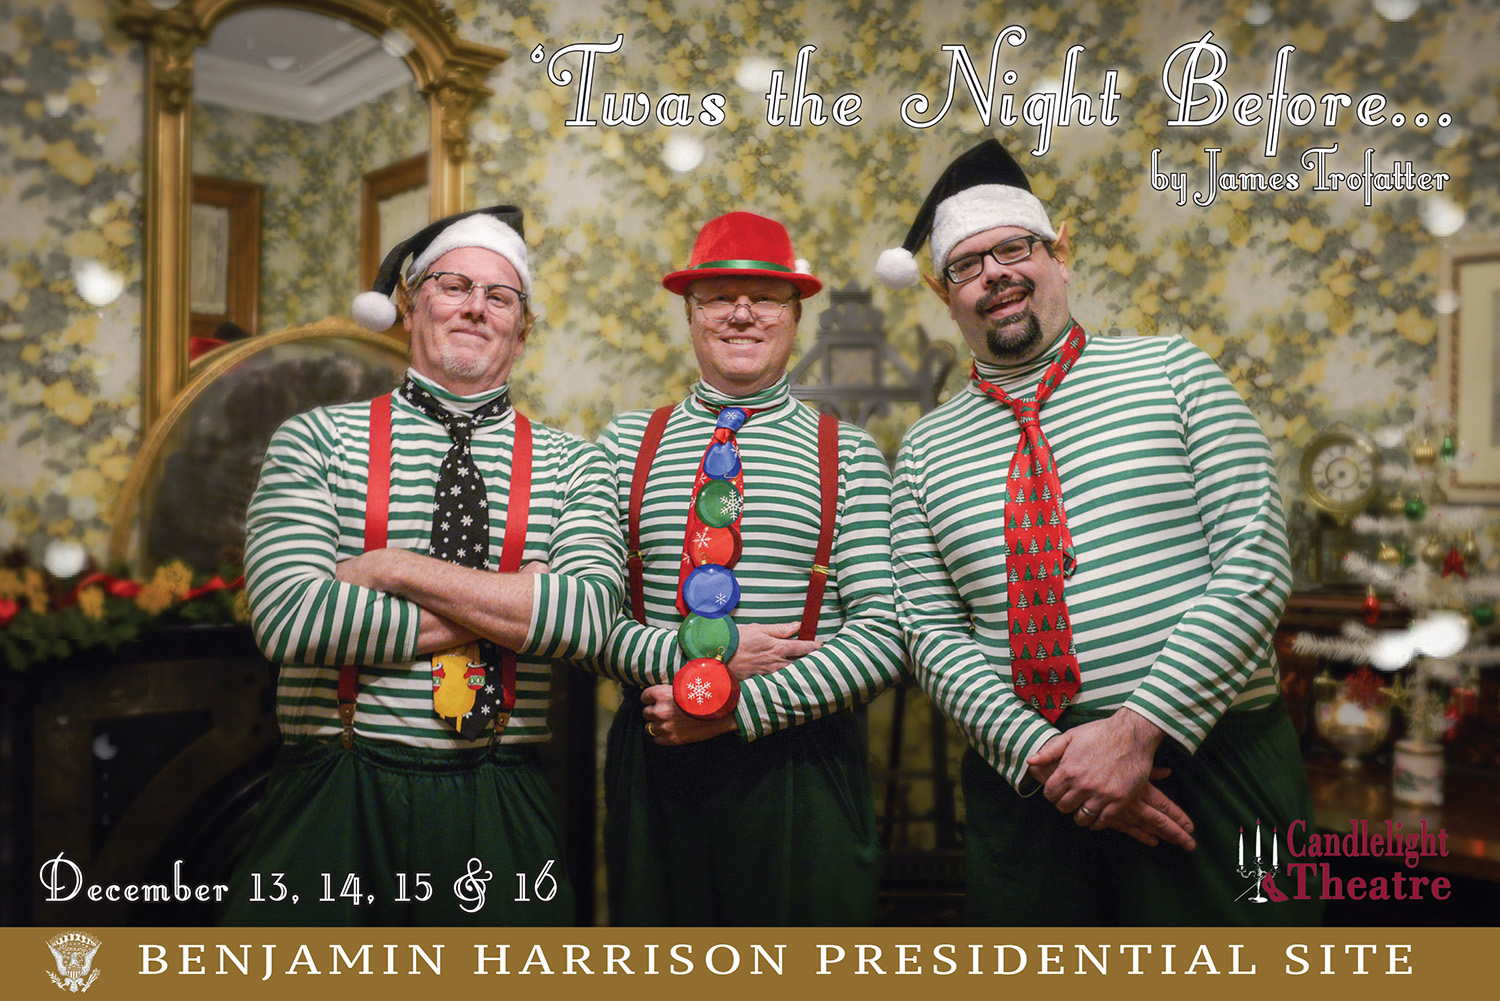 Photograph of three men dressed as elves in the Harrison mansion. Text reads: Twas the Night Before by James Trofatter. December 13, 14, 15, 16